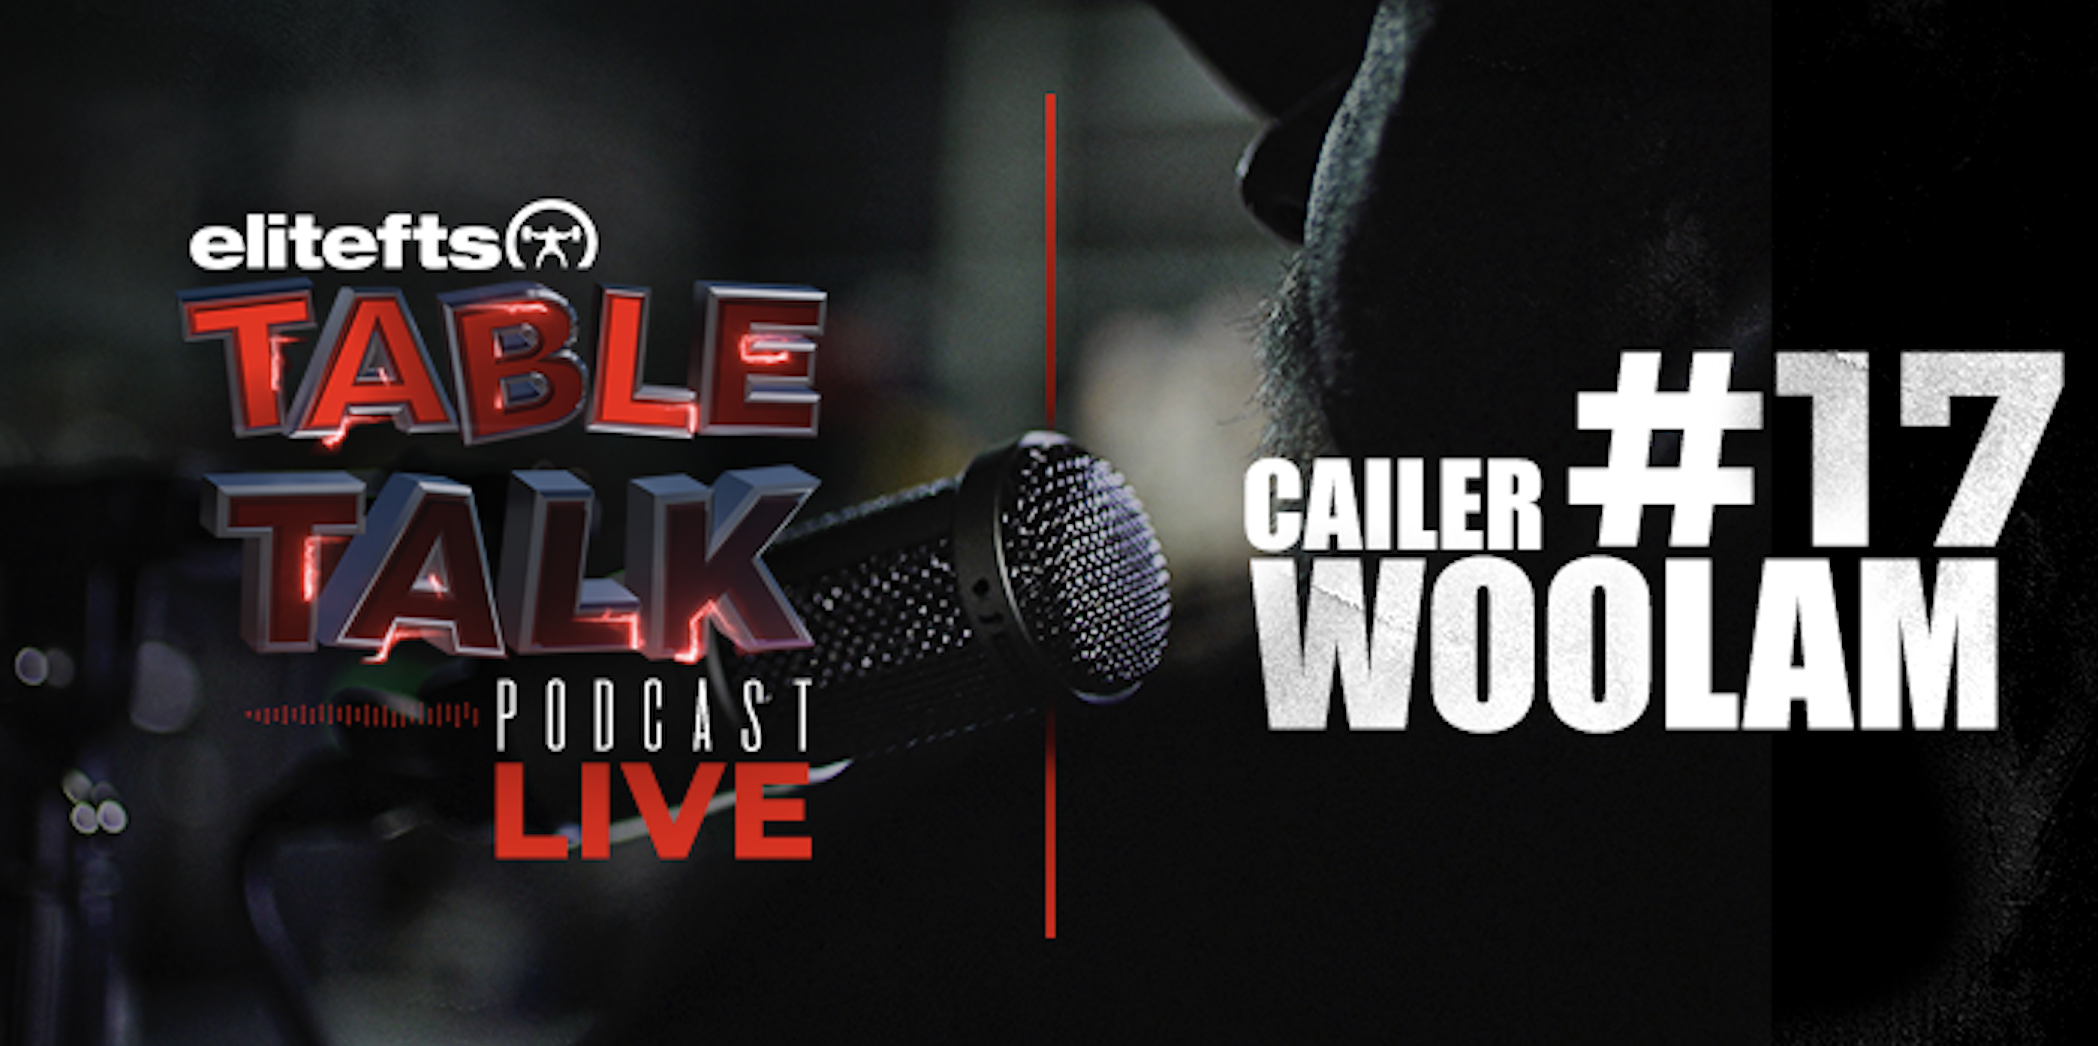 LISTEN: Table Talk Podcast #17 with Cailer Woolam